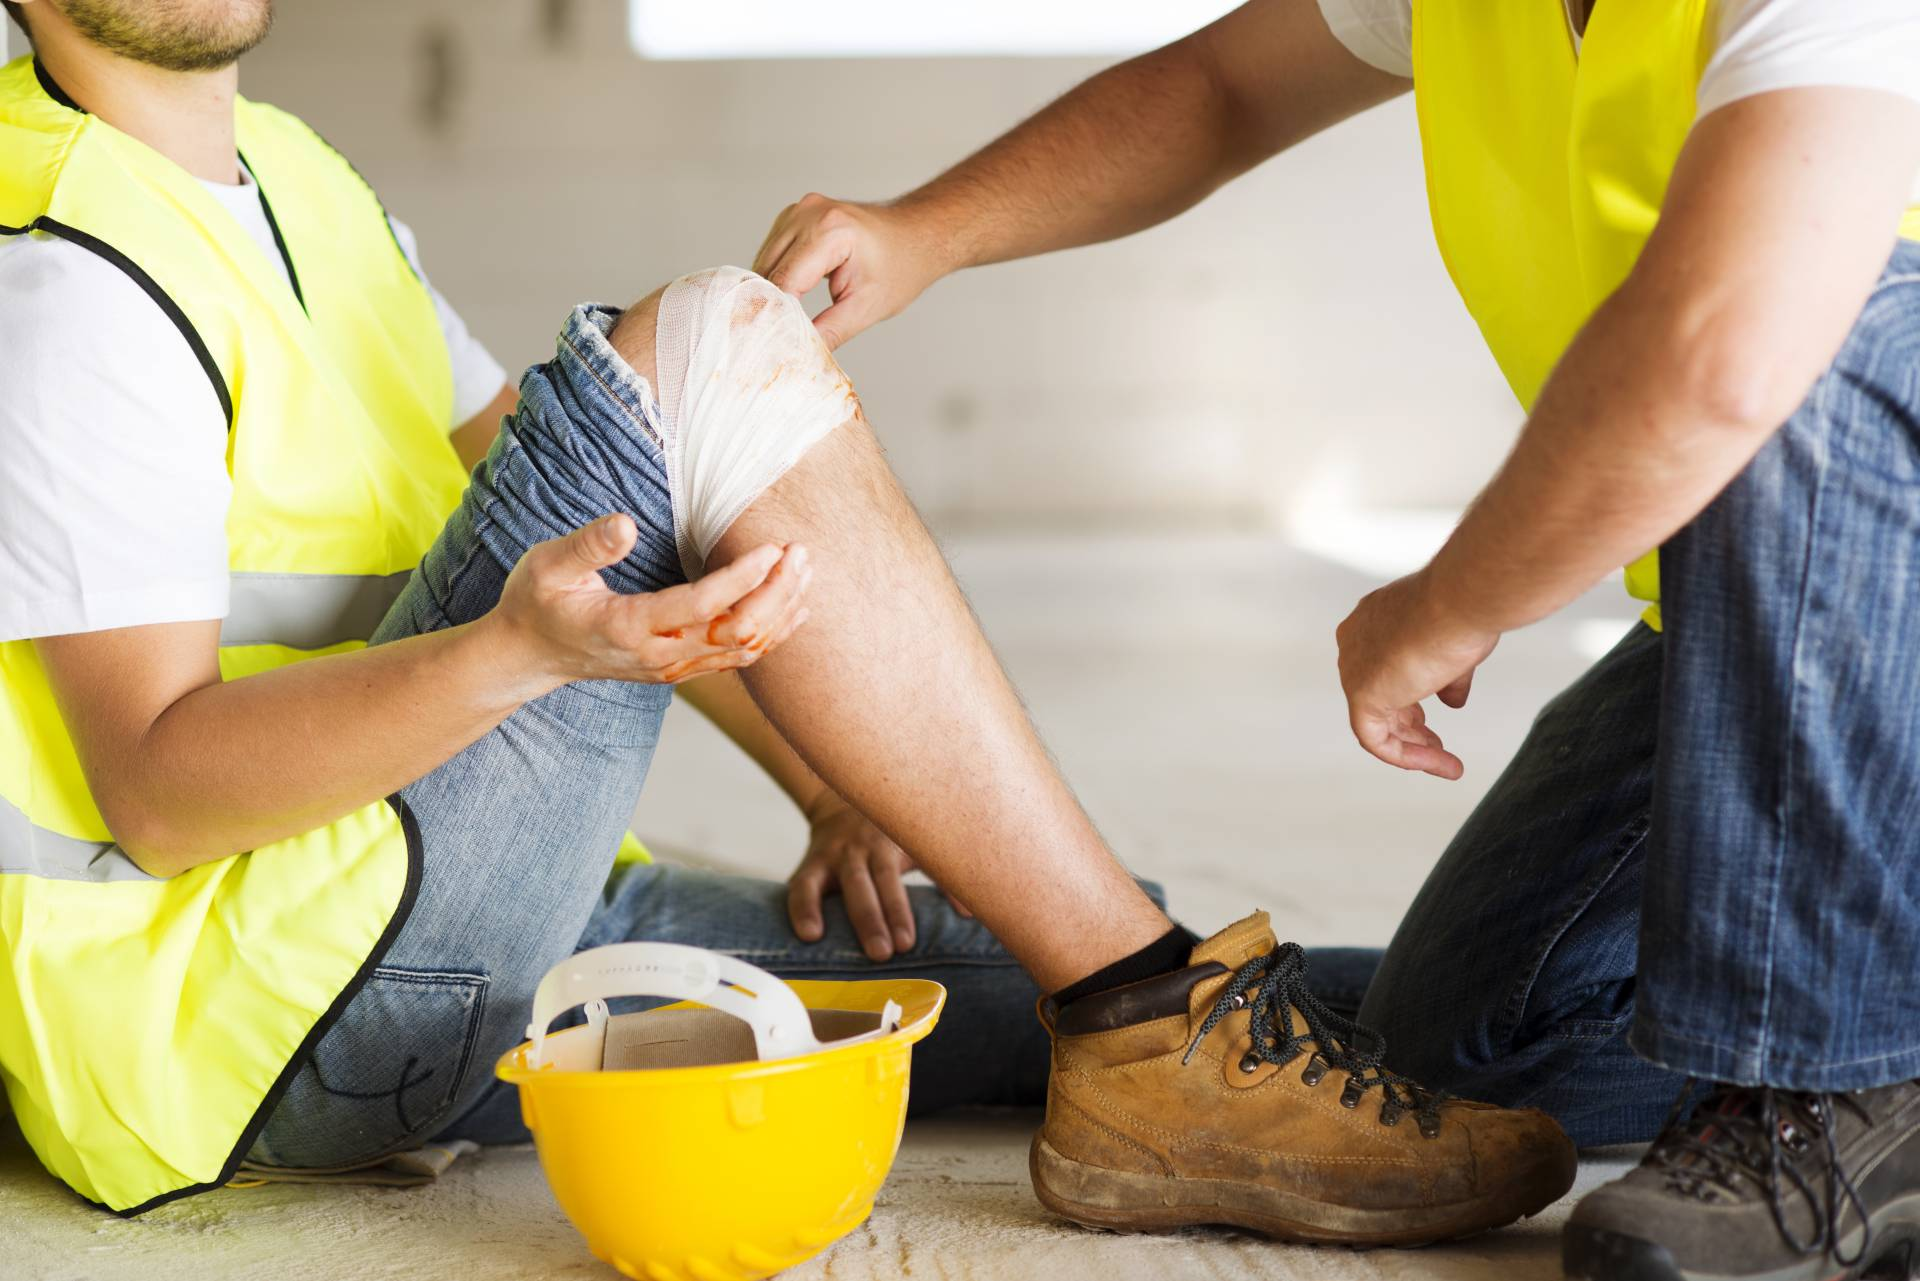 Hurt on the job in Smyrna, Ga? Schedule a free consultation with our personal injury lawyers.